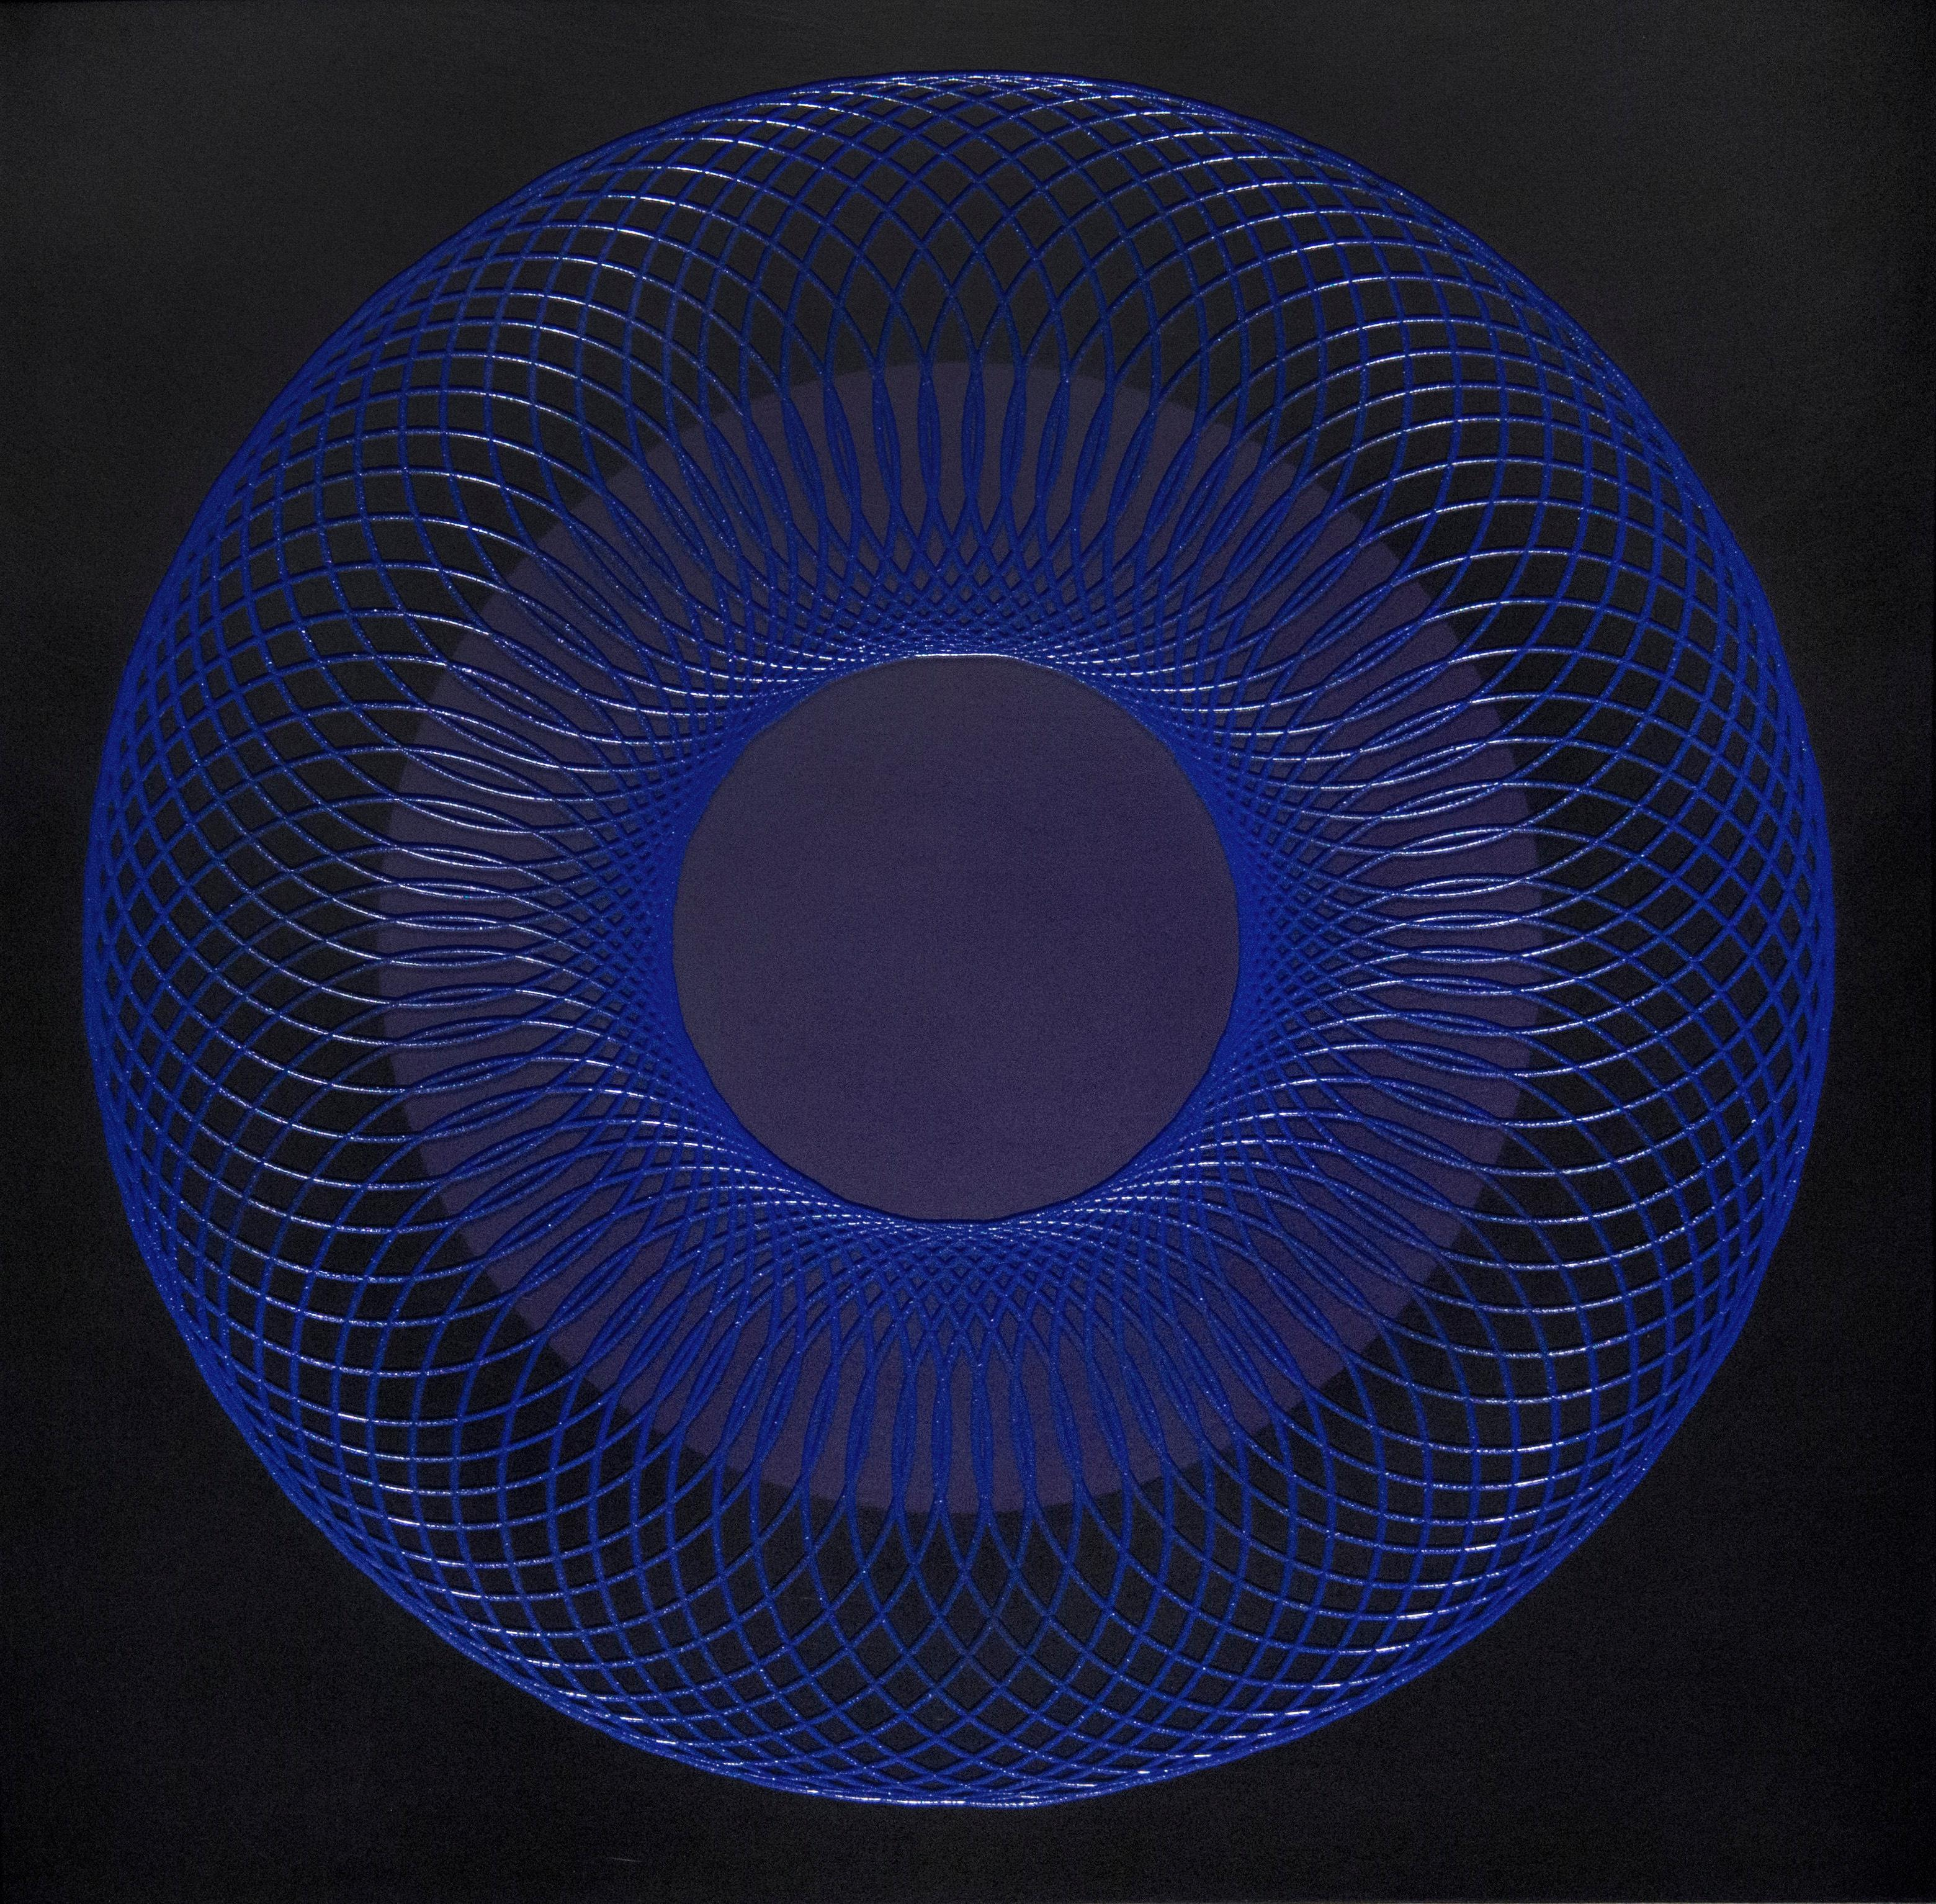 51905- blue circle abstract geometric holographic light drawing on wood panel